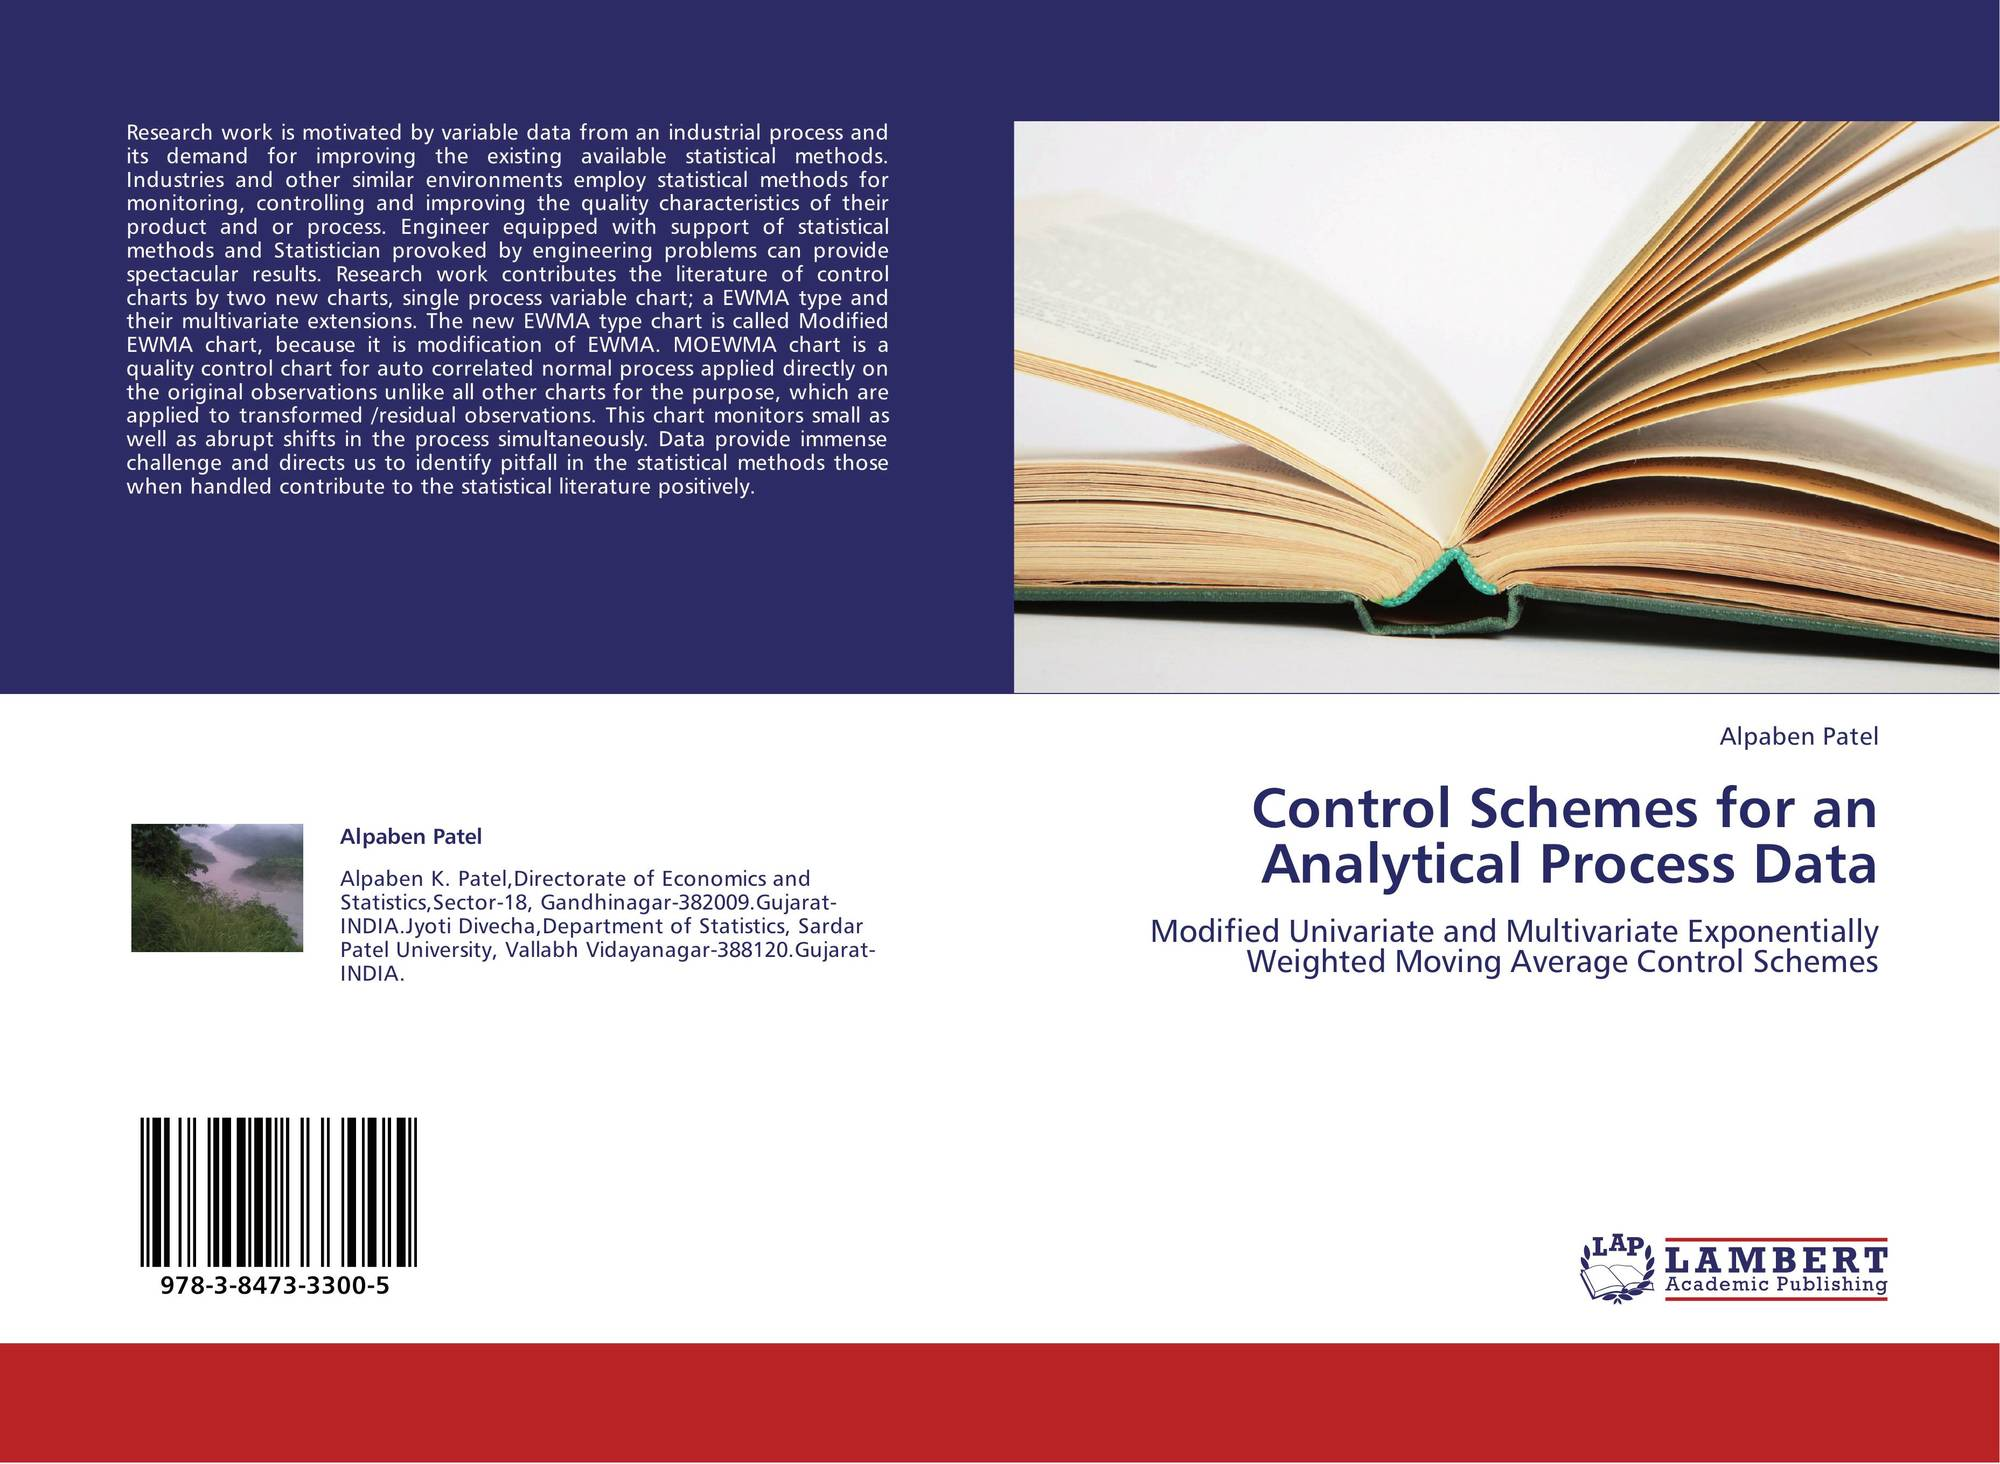 an analysis of the control theory established and researched by michael gottfredson and travis hirsc Sage video bringing teaching, learning and research to life sage books the ultimate social sciences digital library sage reference the complete guide for your research journey.